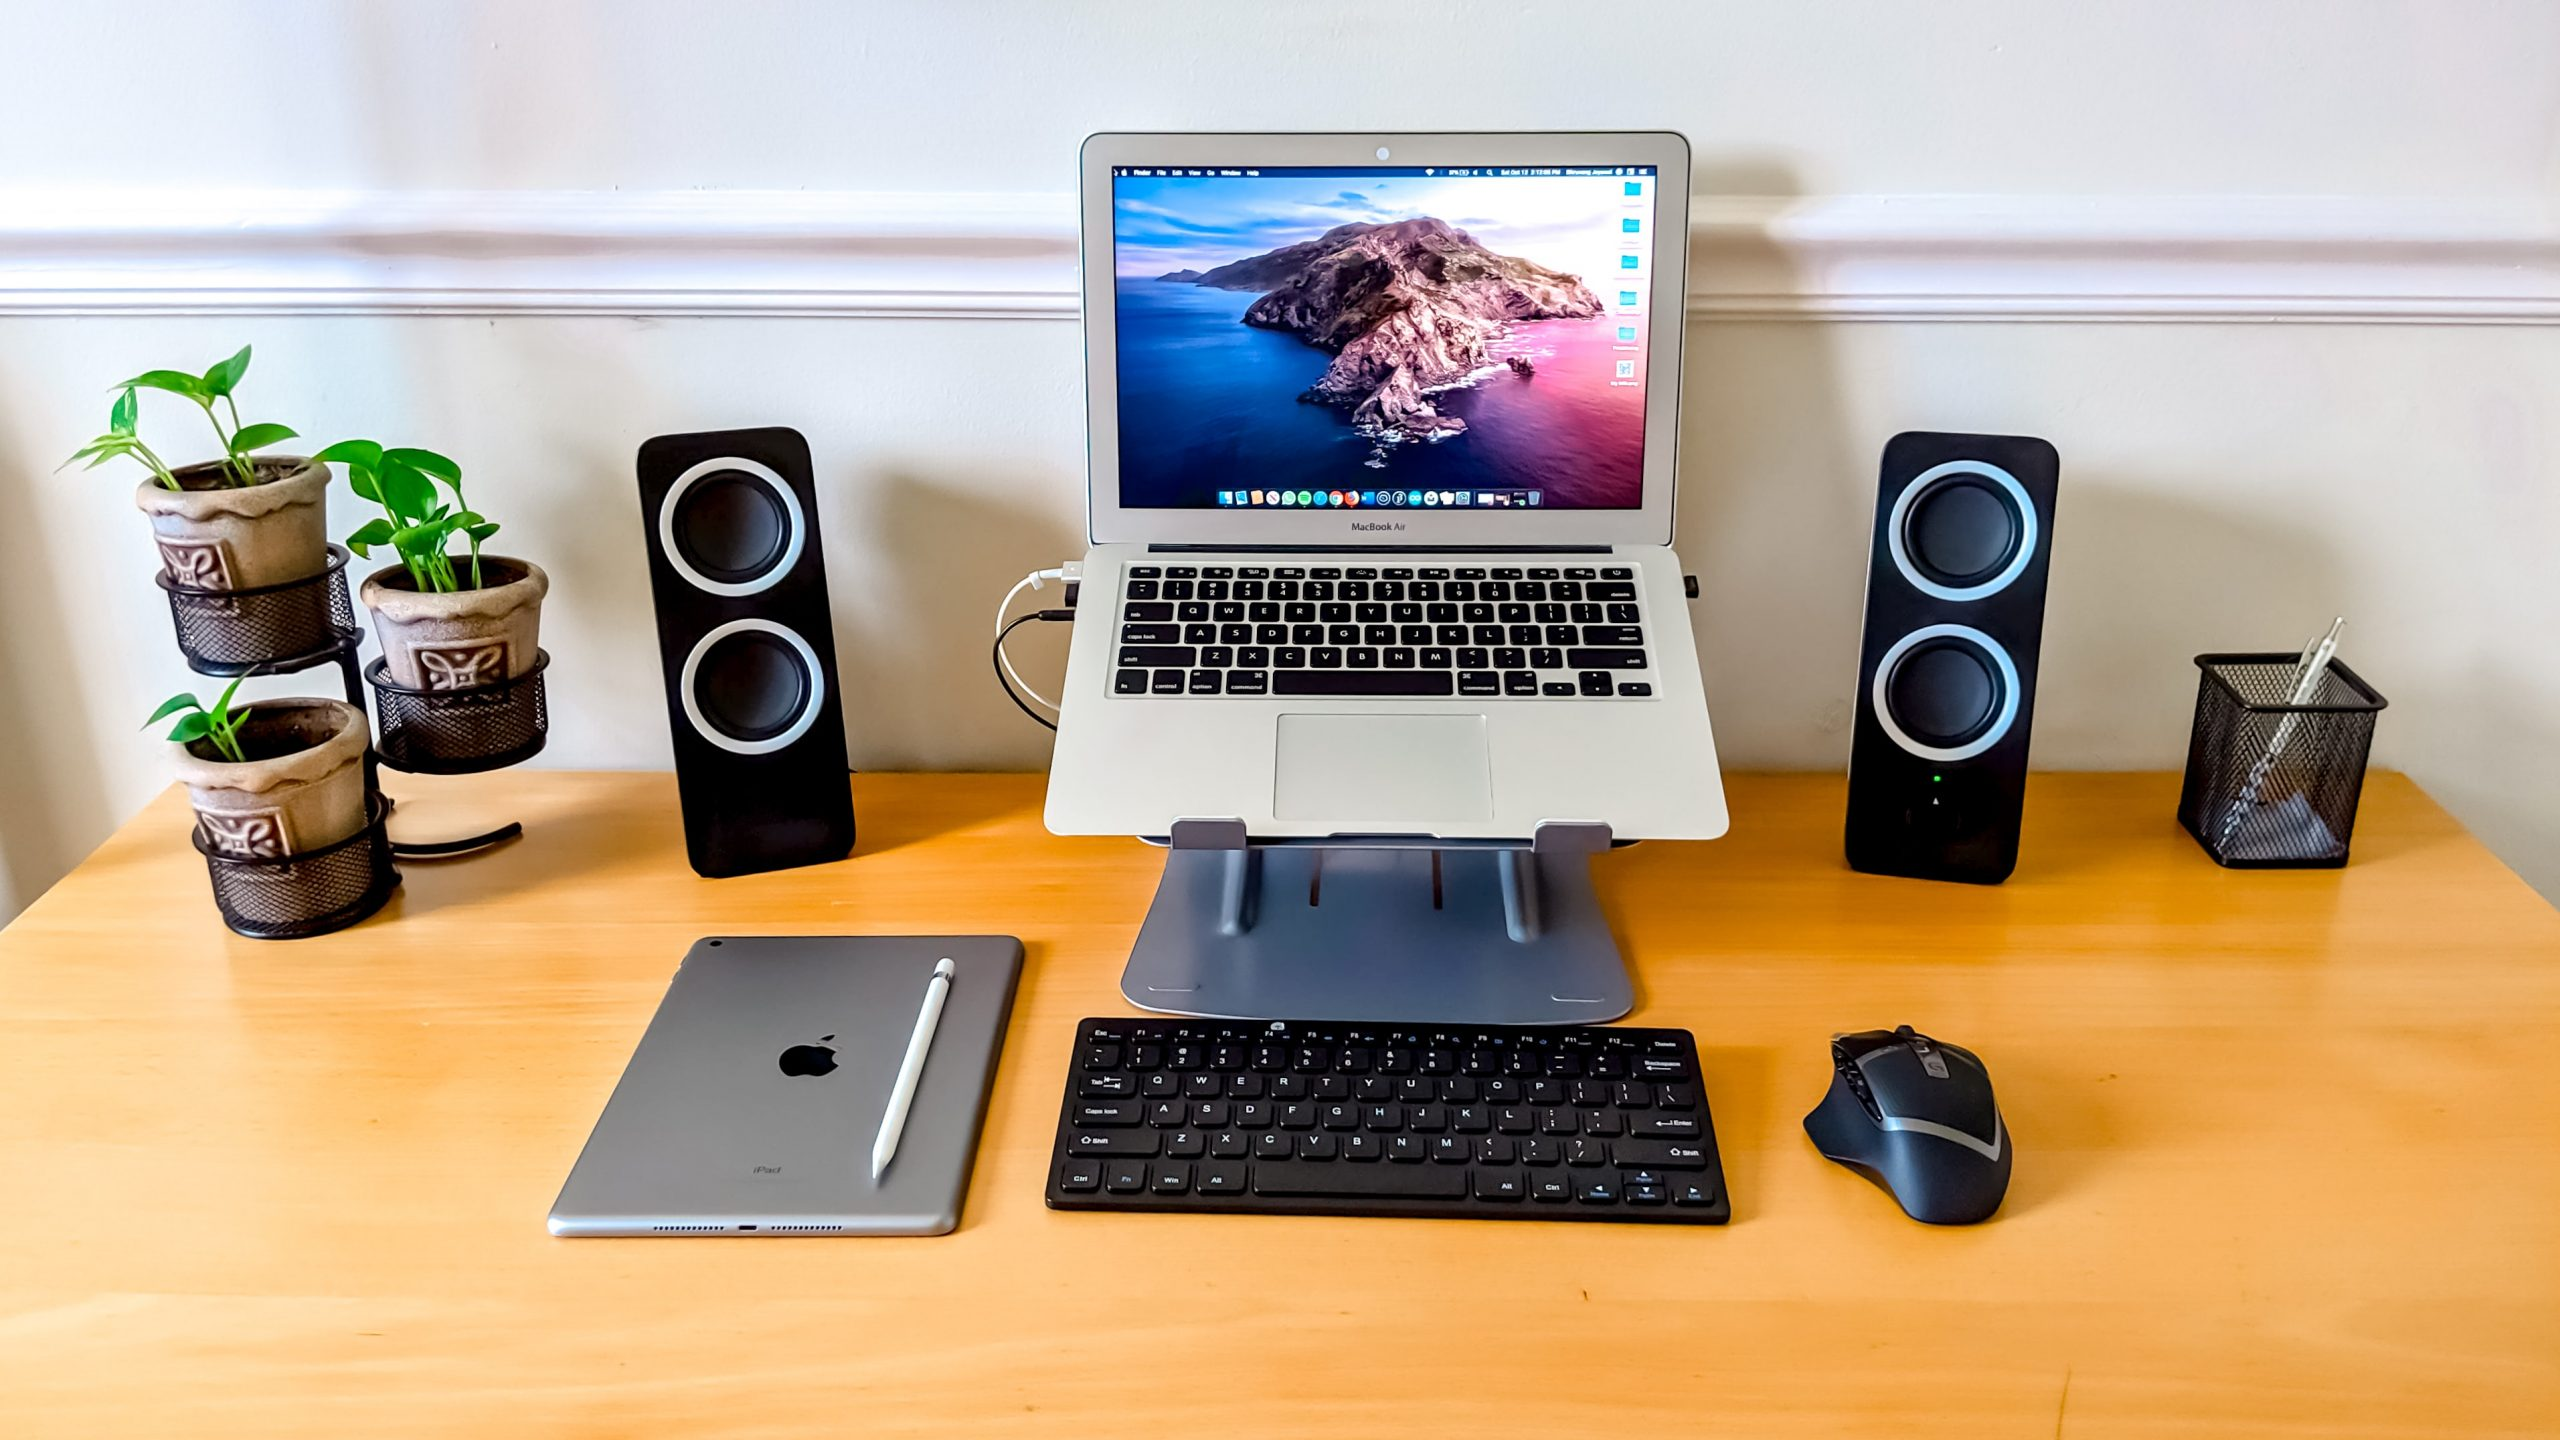 Best Computer Speakers 2020: Shopping Guide & Review